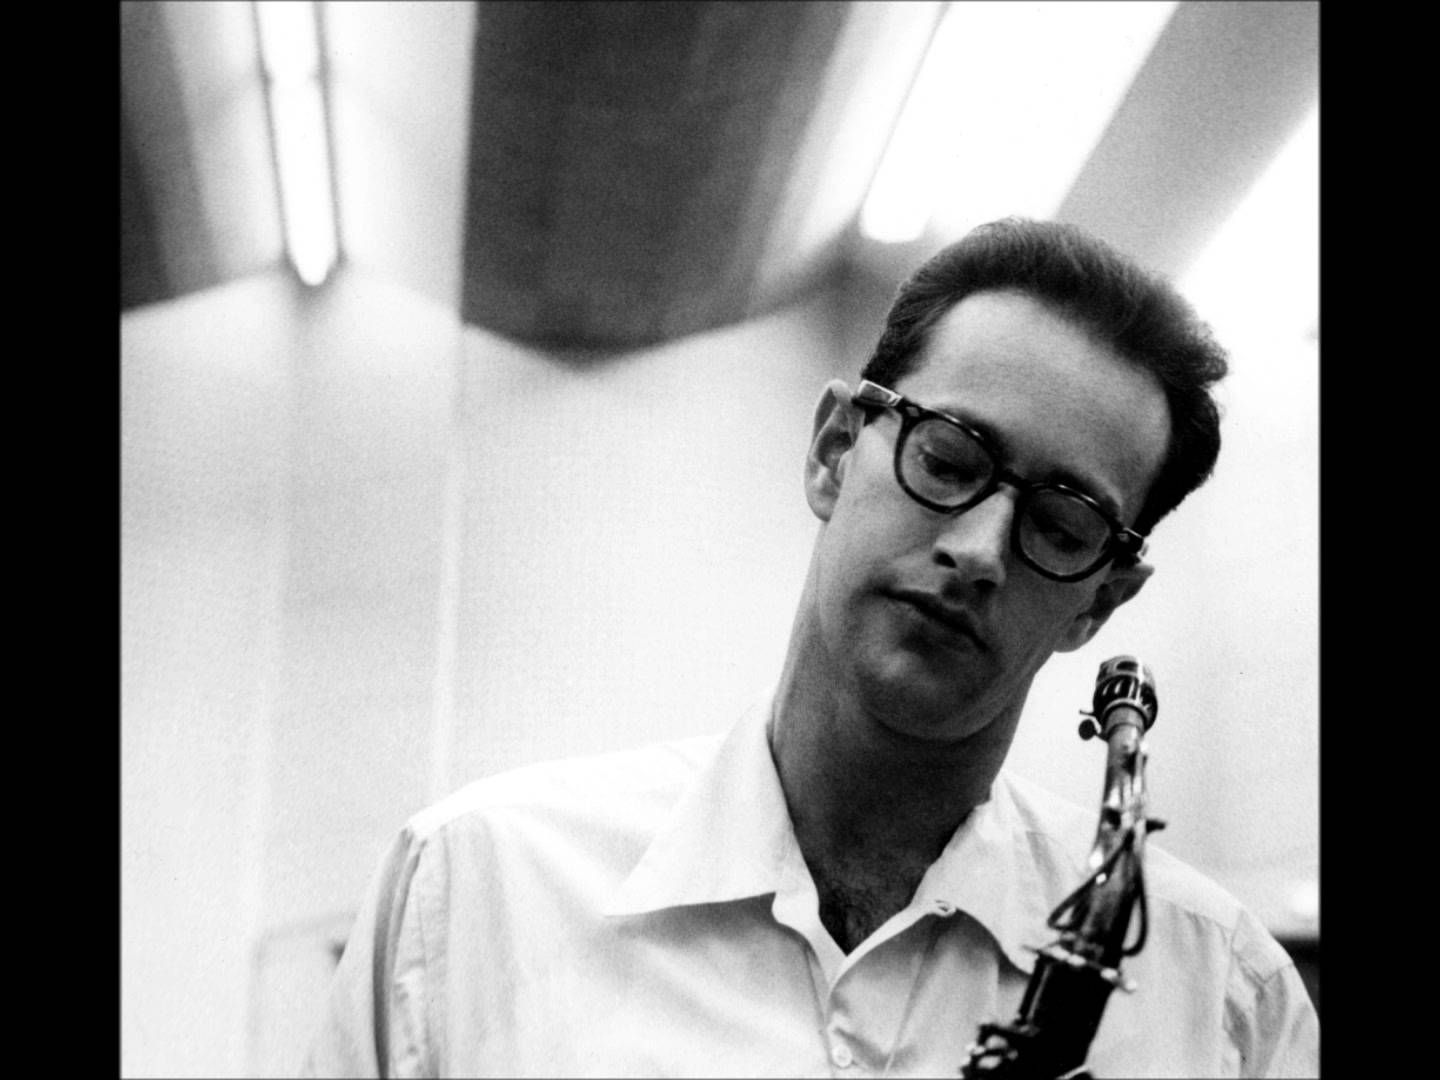 Paul Desmond - When Joanna Loved Me - Best jazz song ever